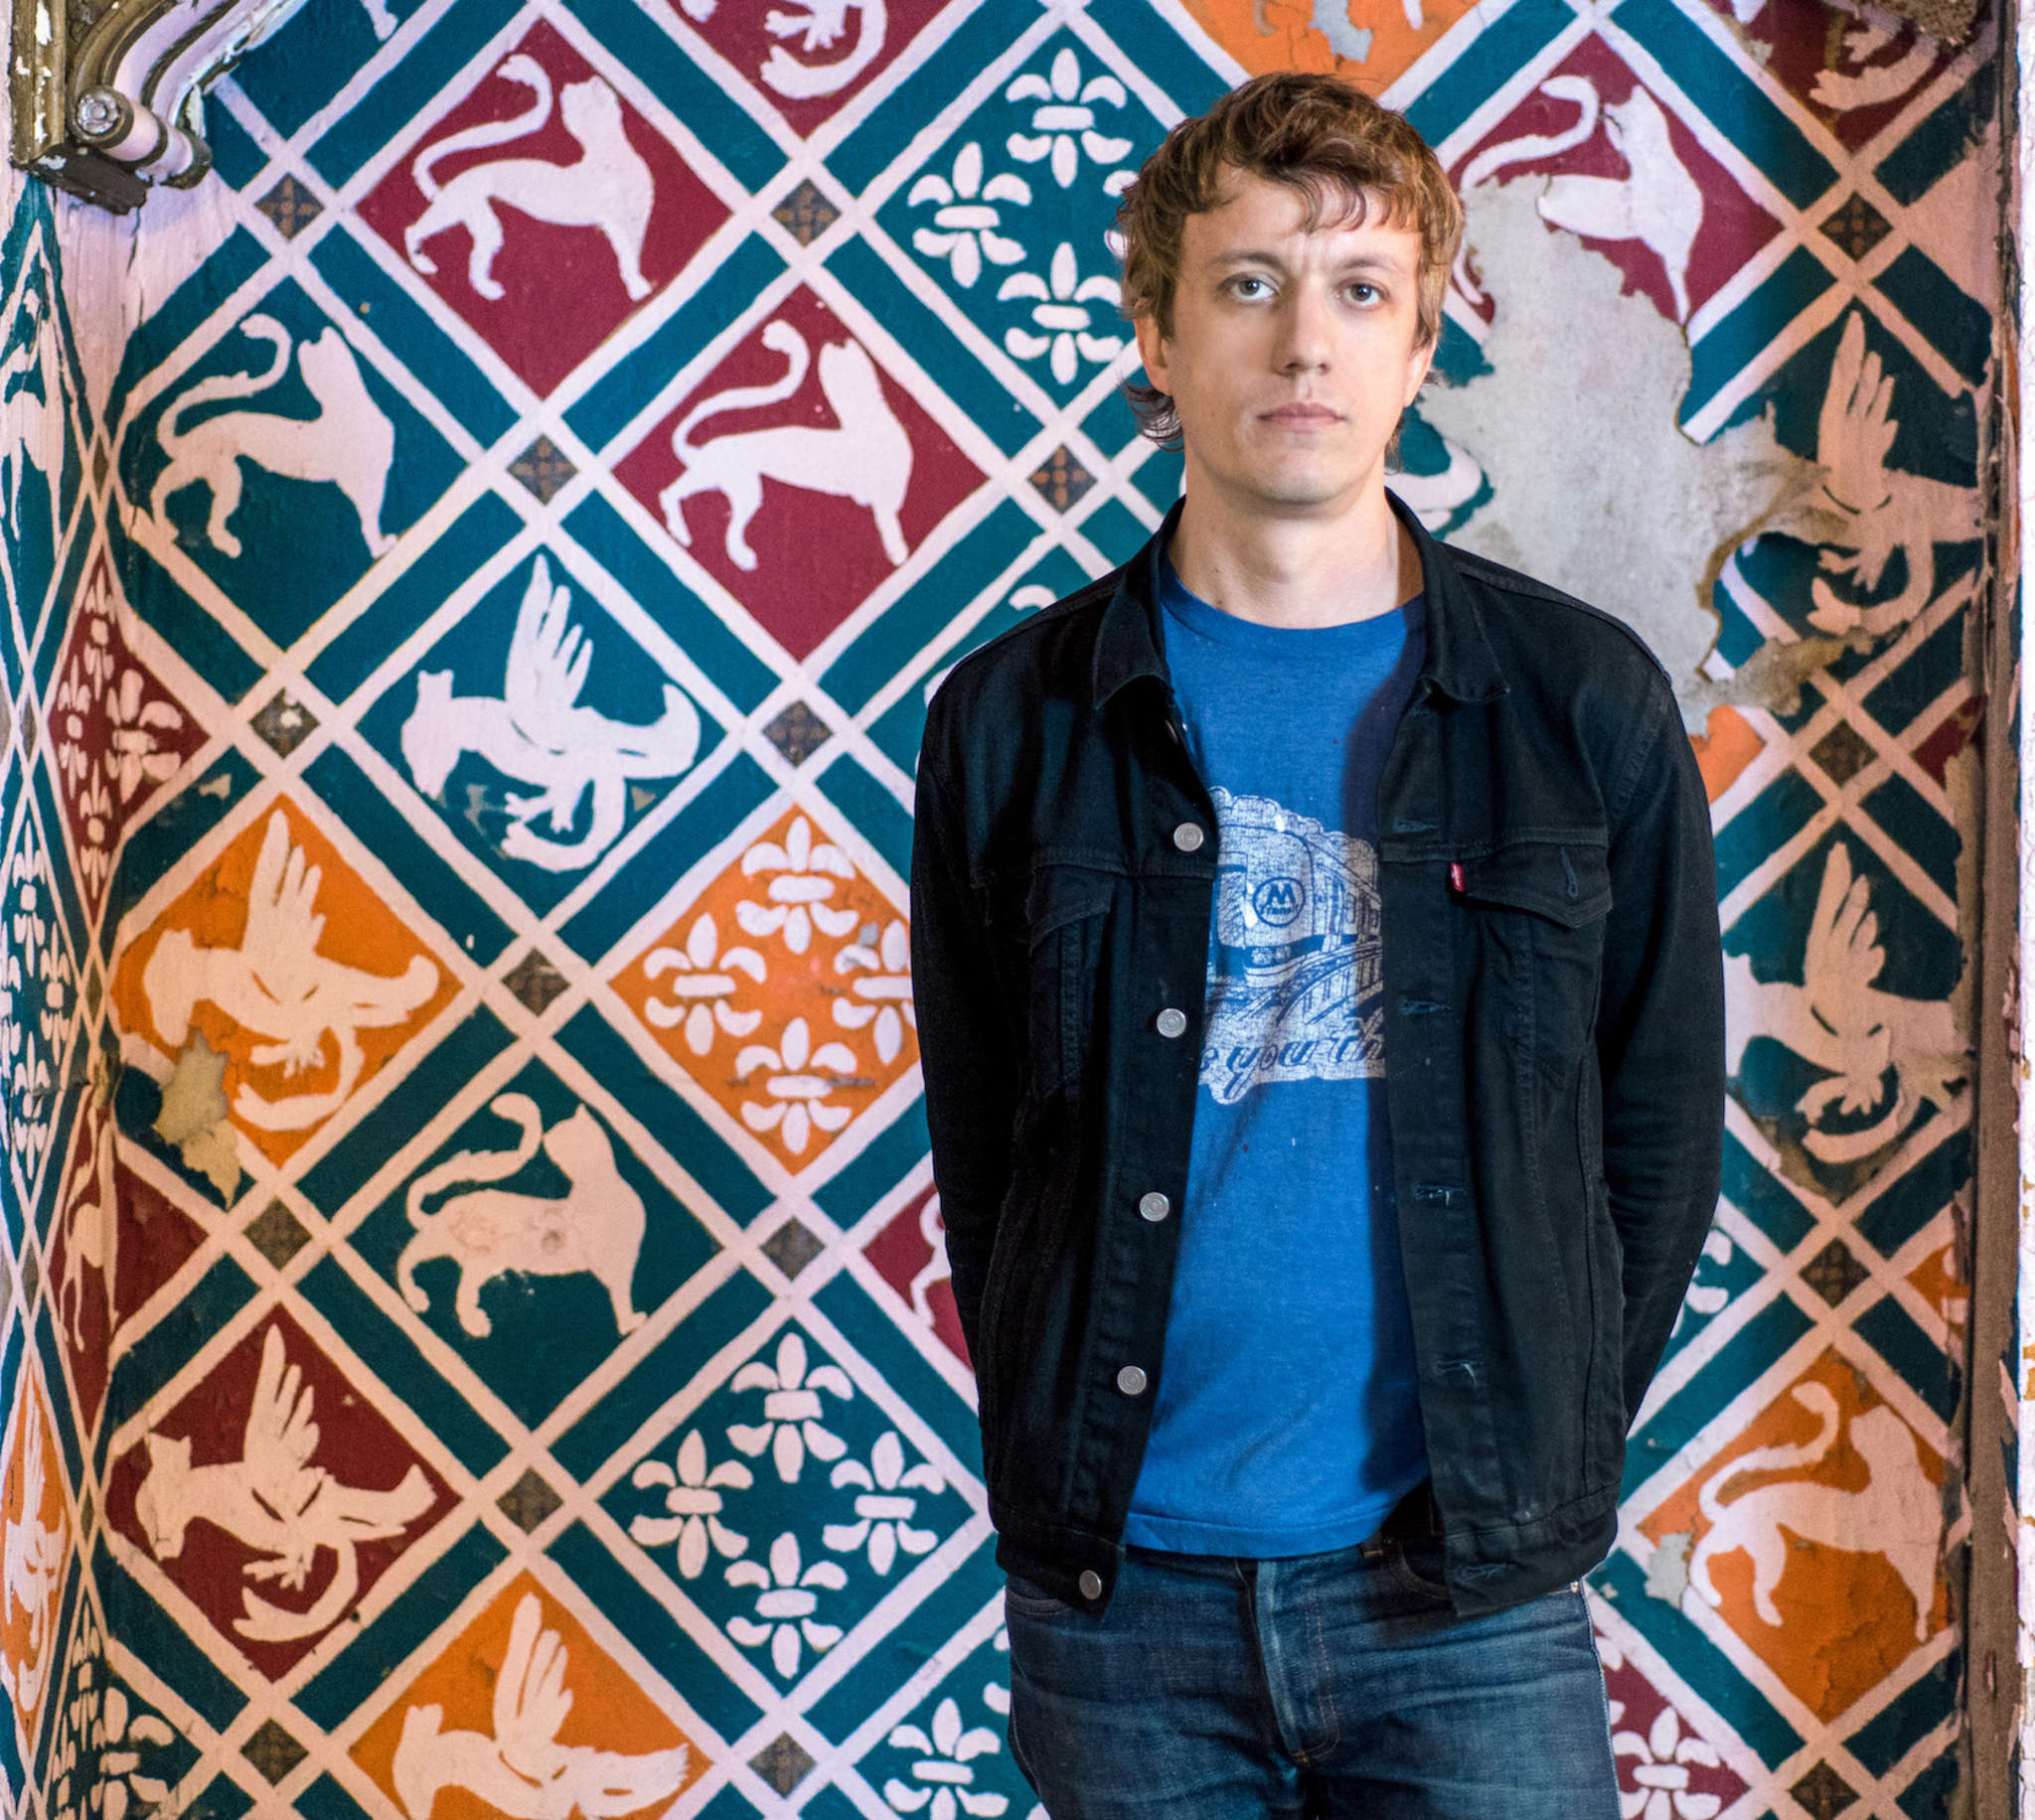 Steve Gunn´s album tour will eventually bring him to Philadelphia on July 9 at Union Transfer.